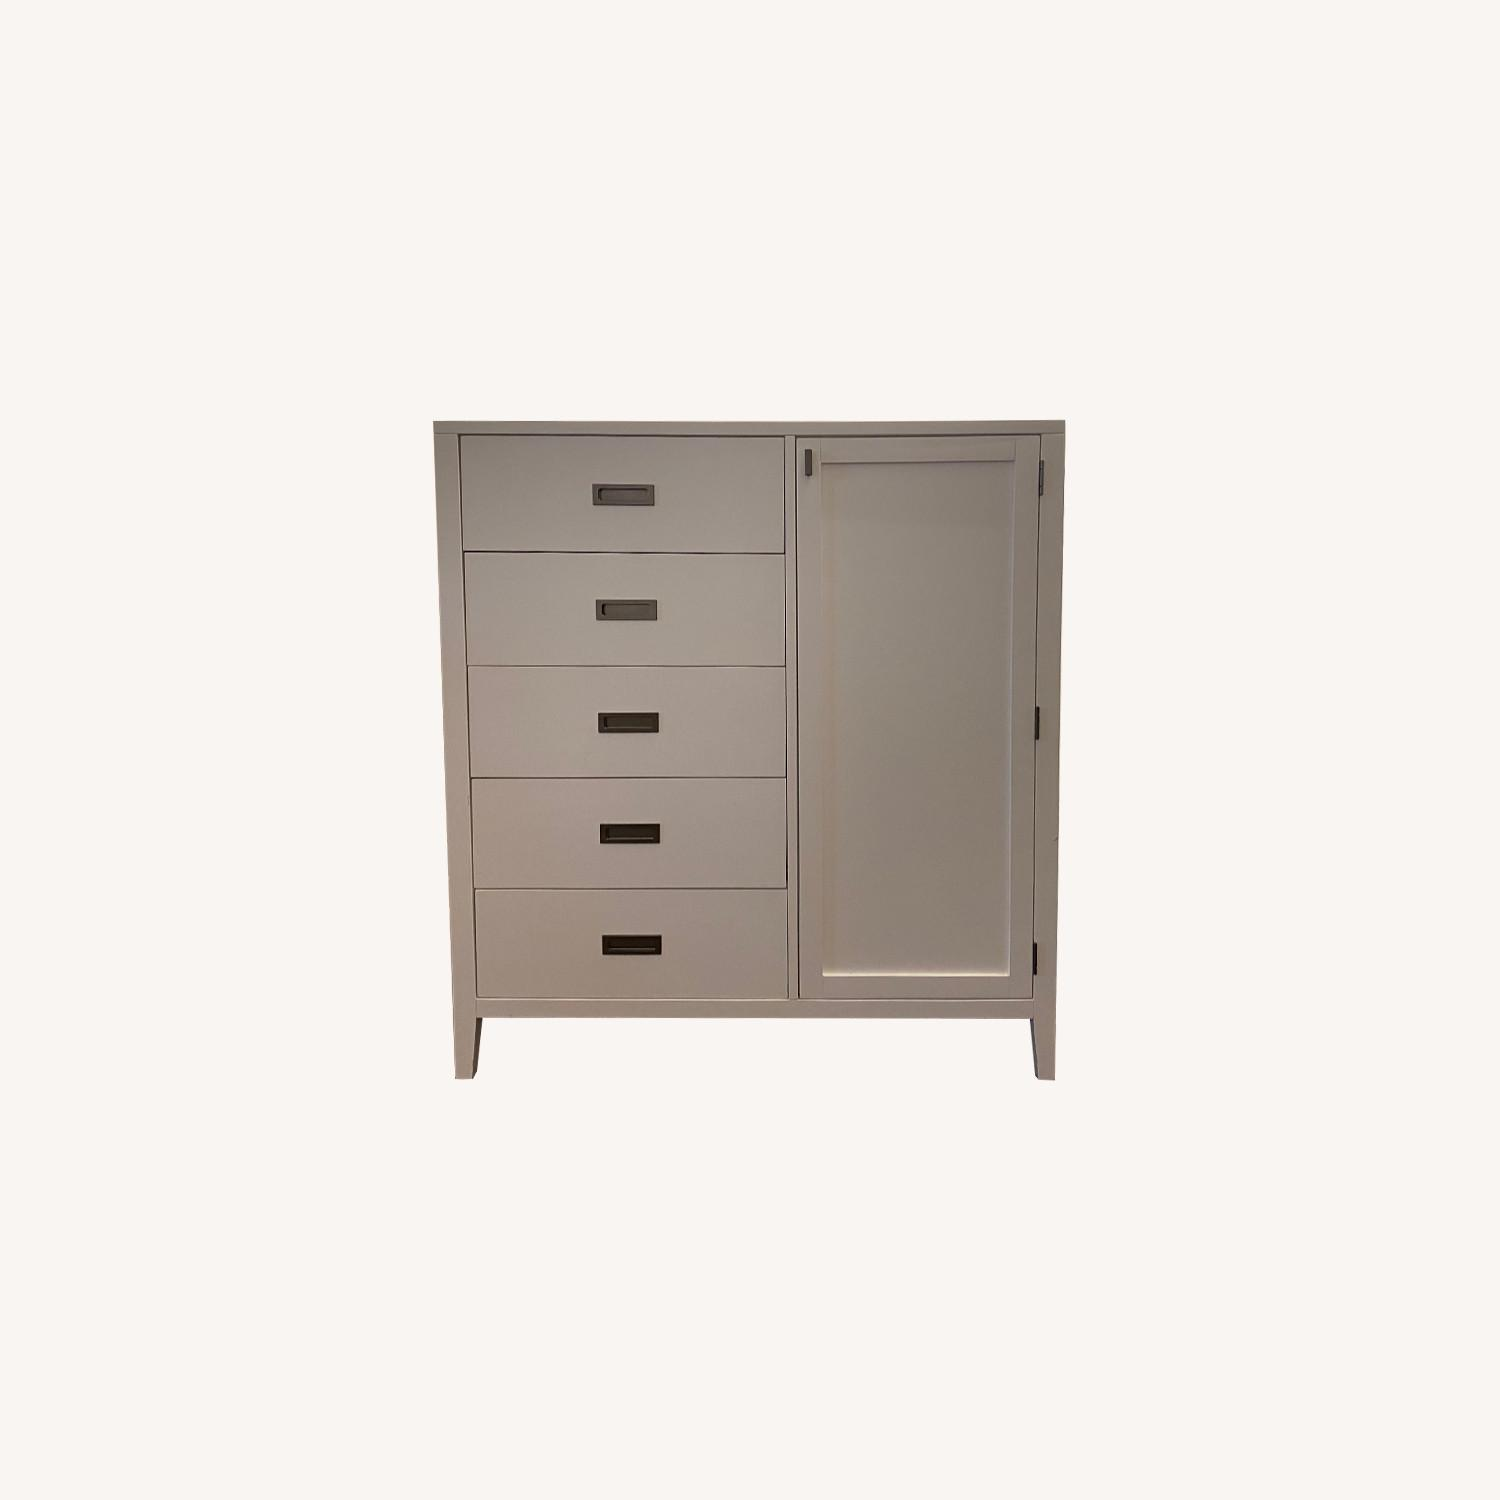 Crate and Barrel Arch Wardrobe / Dresser - image-0